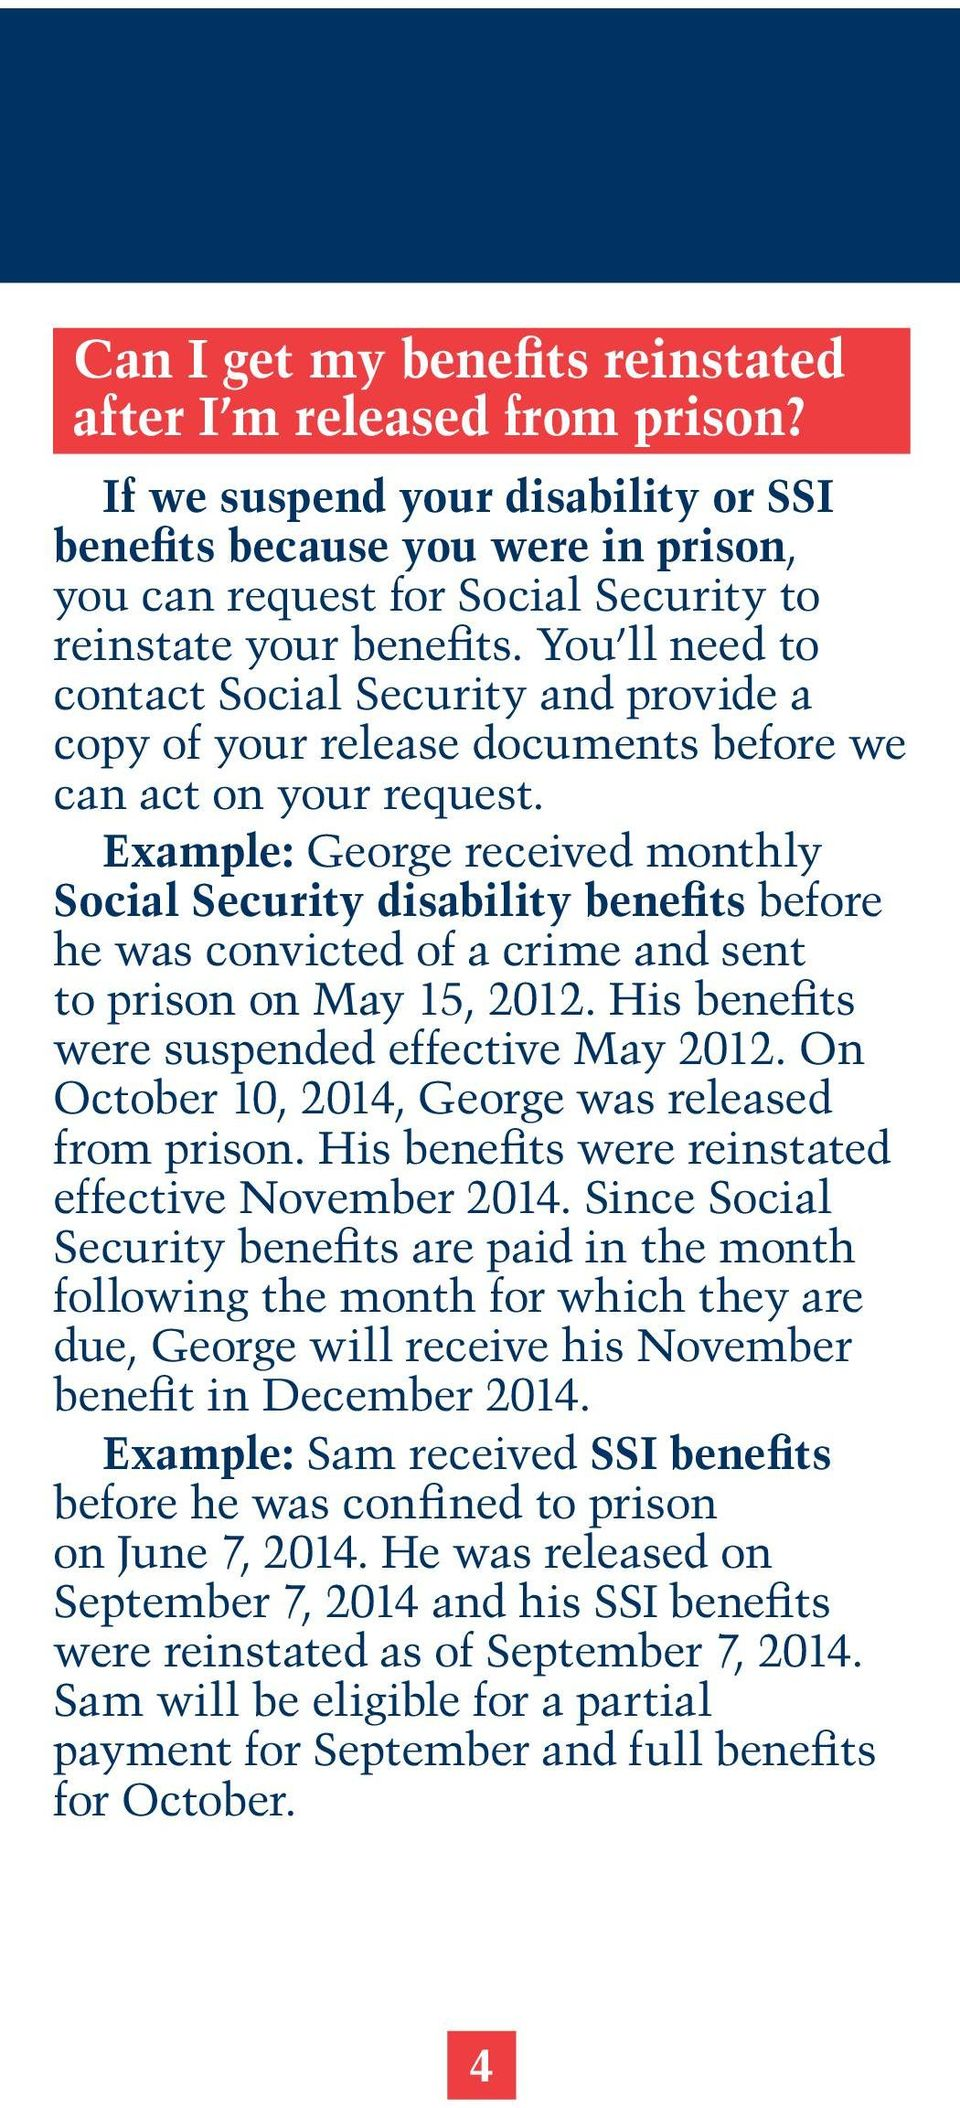 You ll need to contact Social Security and provide a copy of your release documents before we can act on your request.